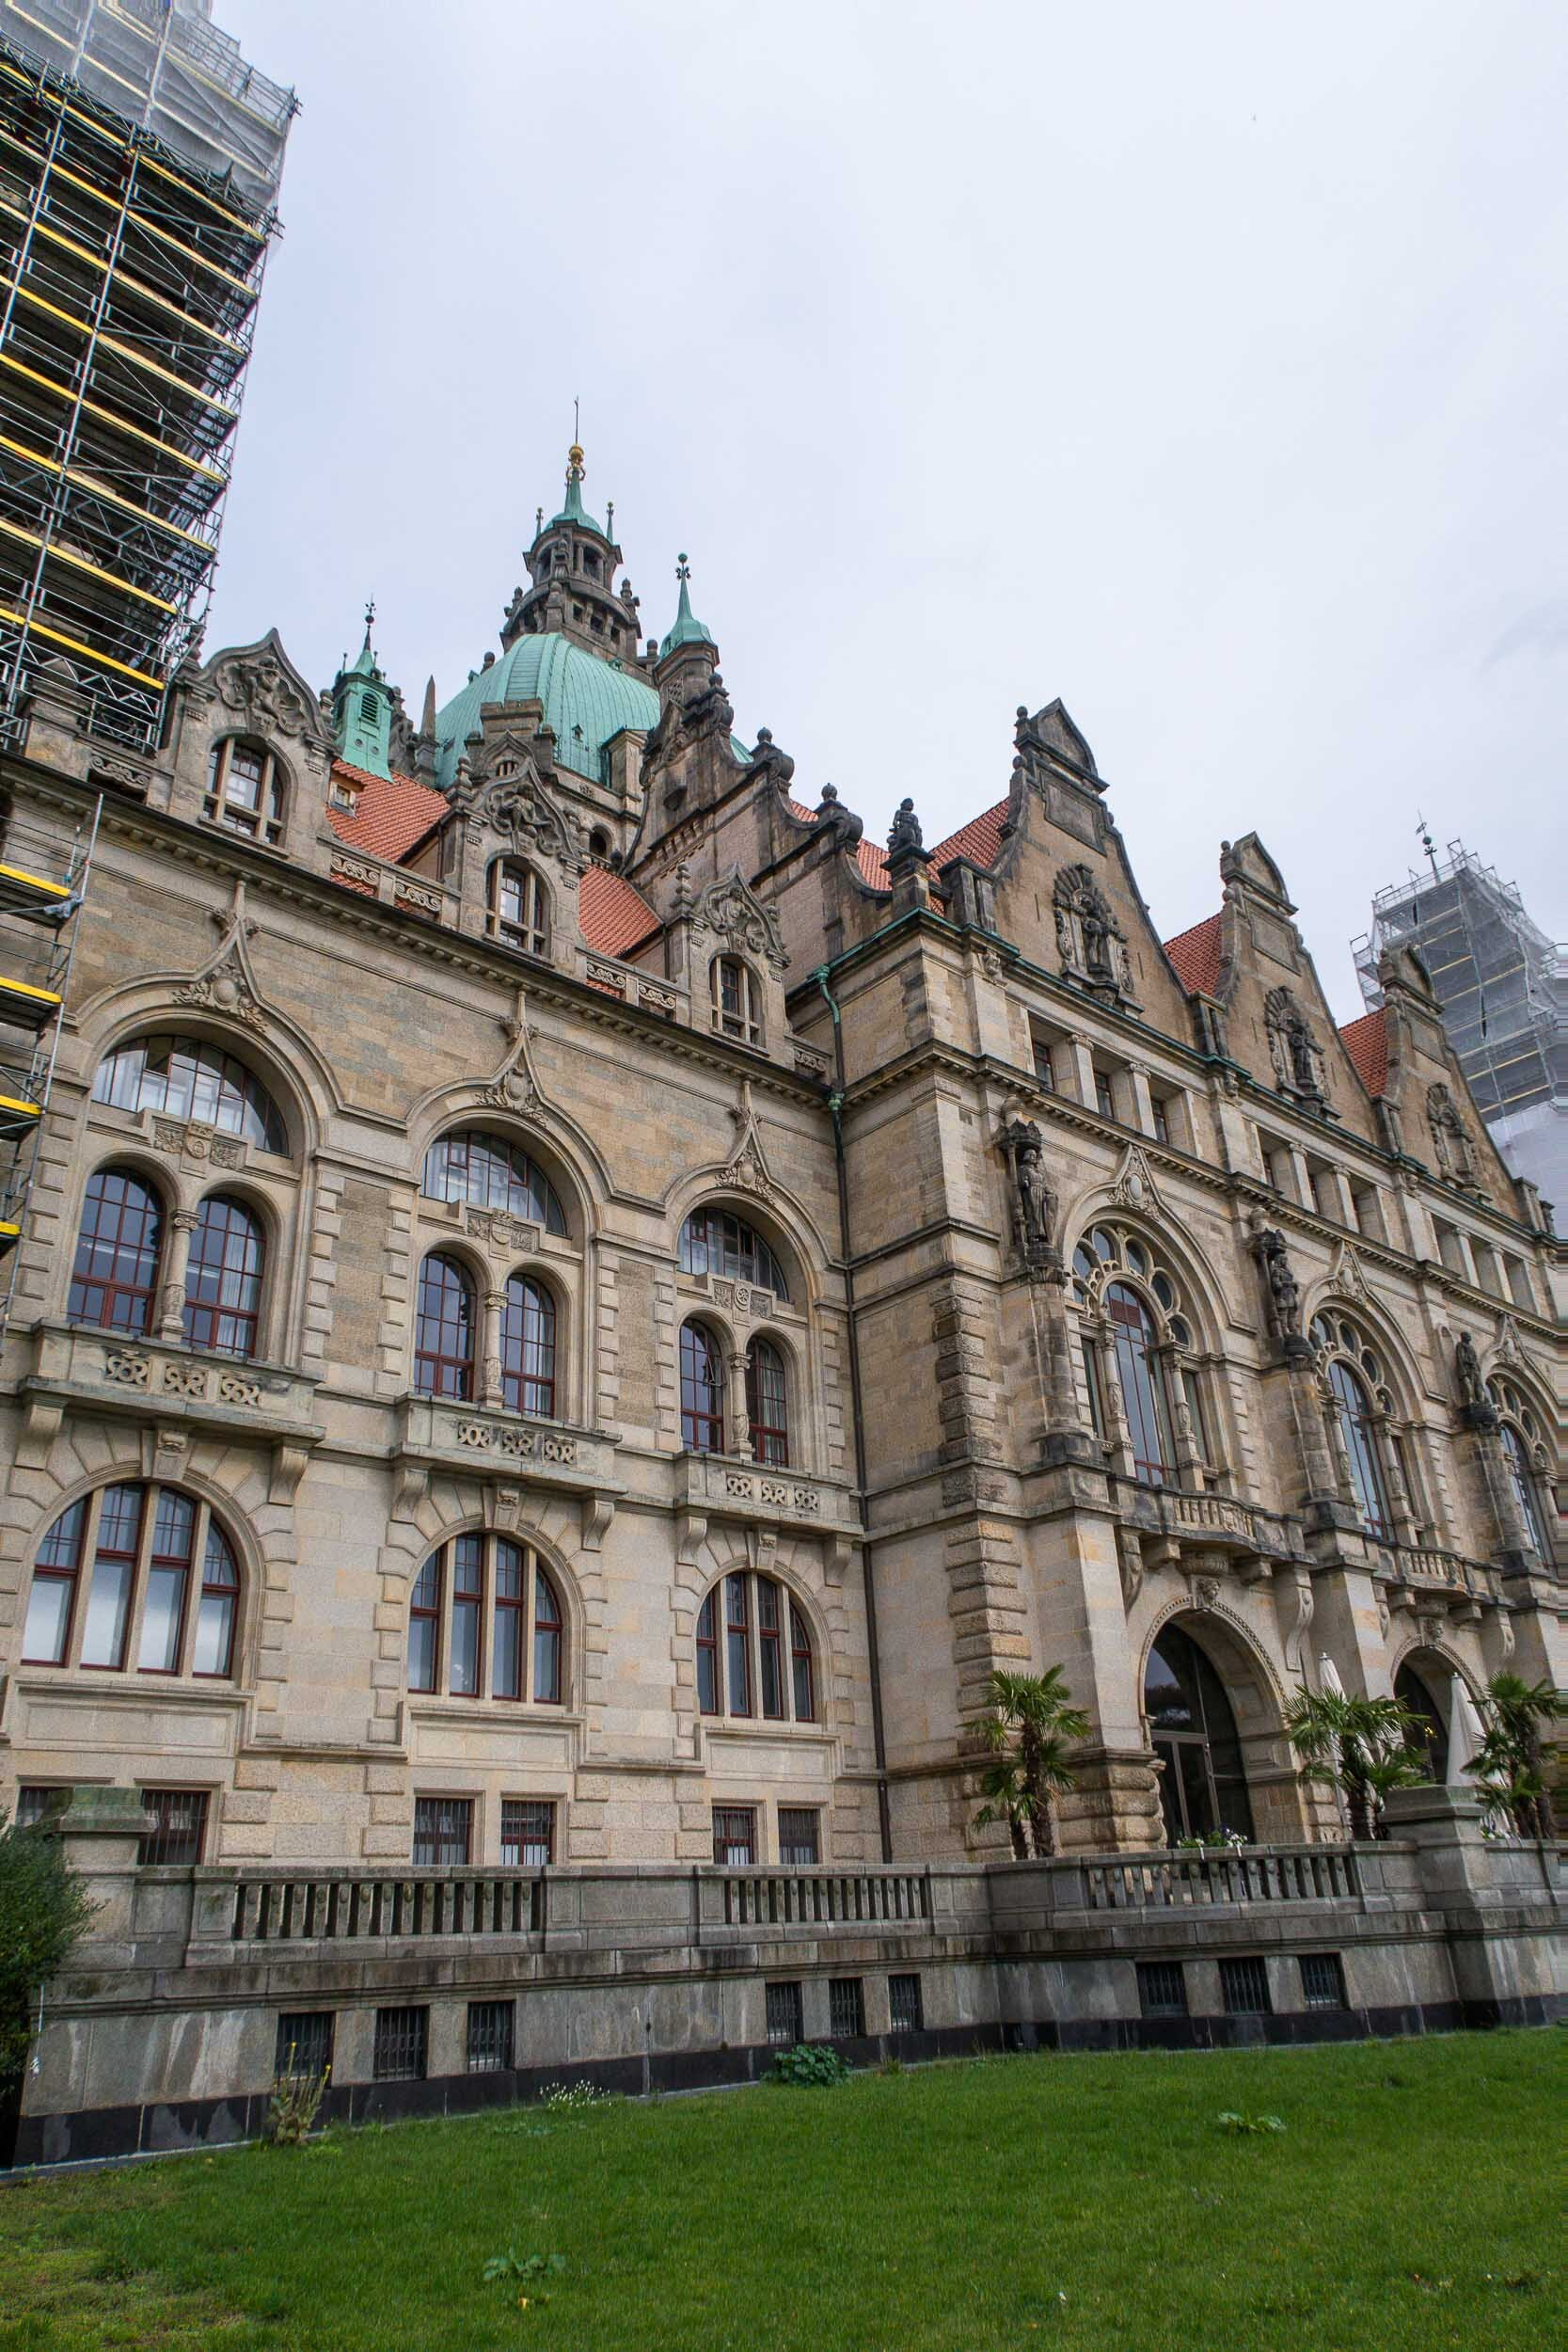 The magnificent New Town Hall in Hannover, Germany. One of the most photographable cities in Bulgaria